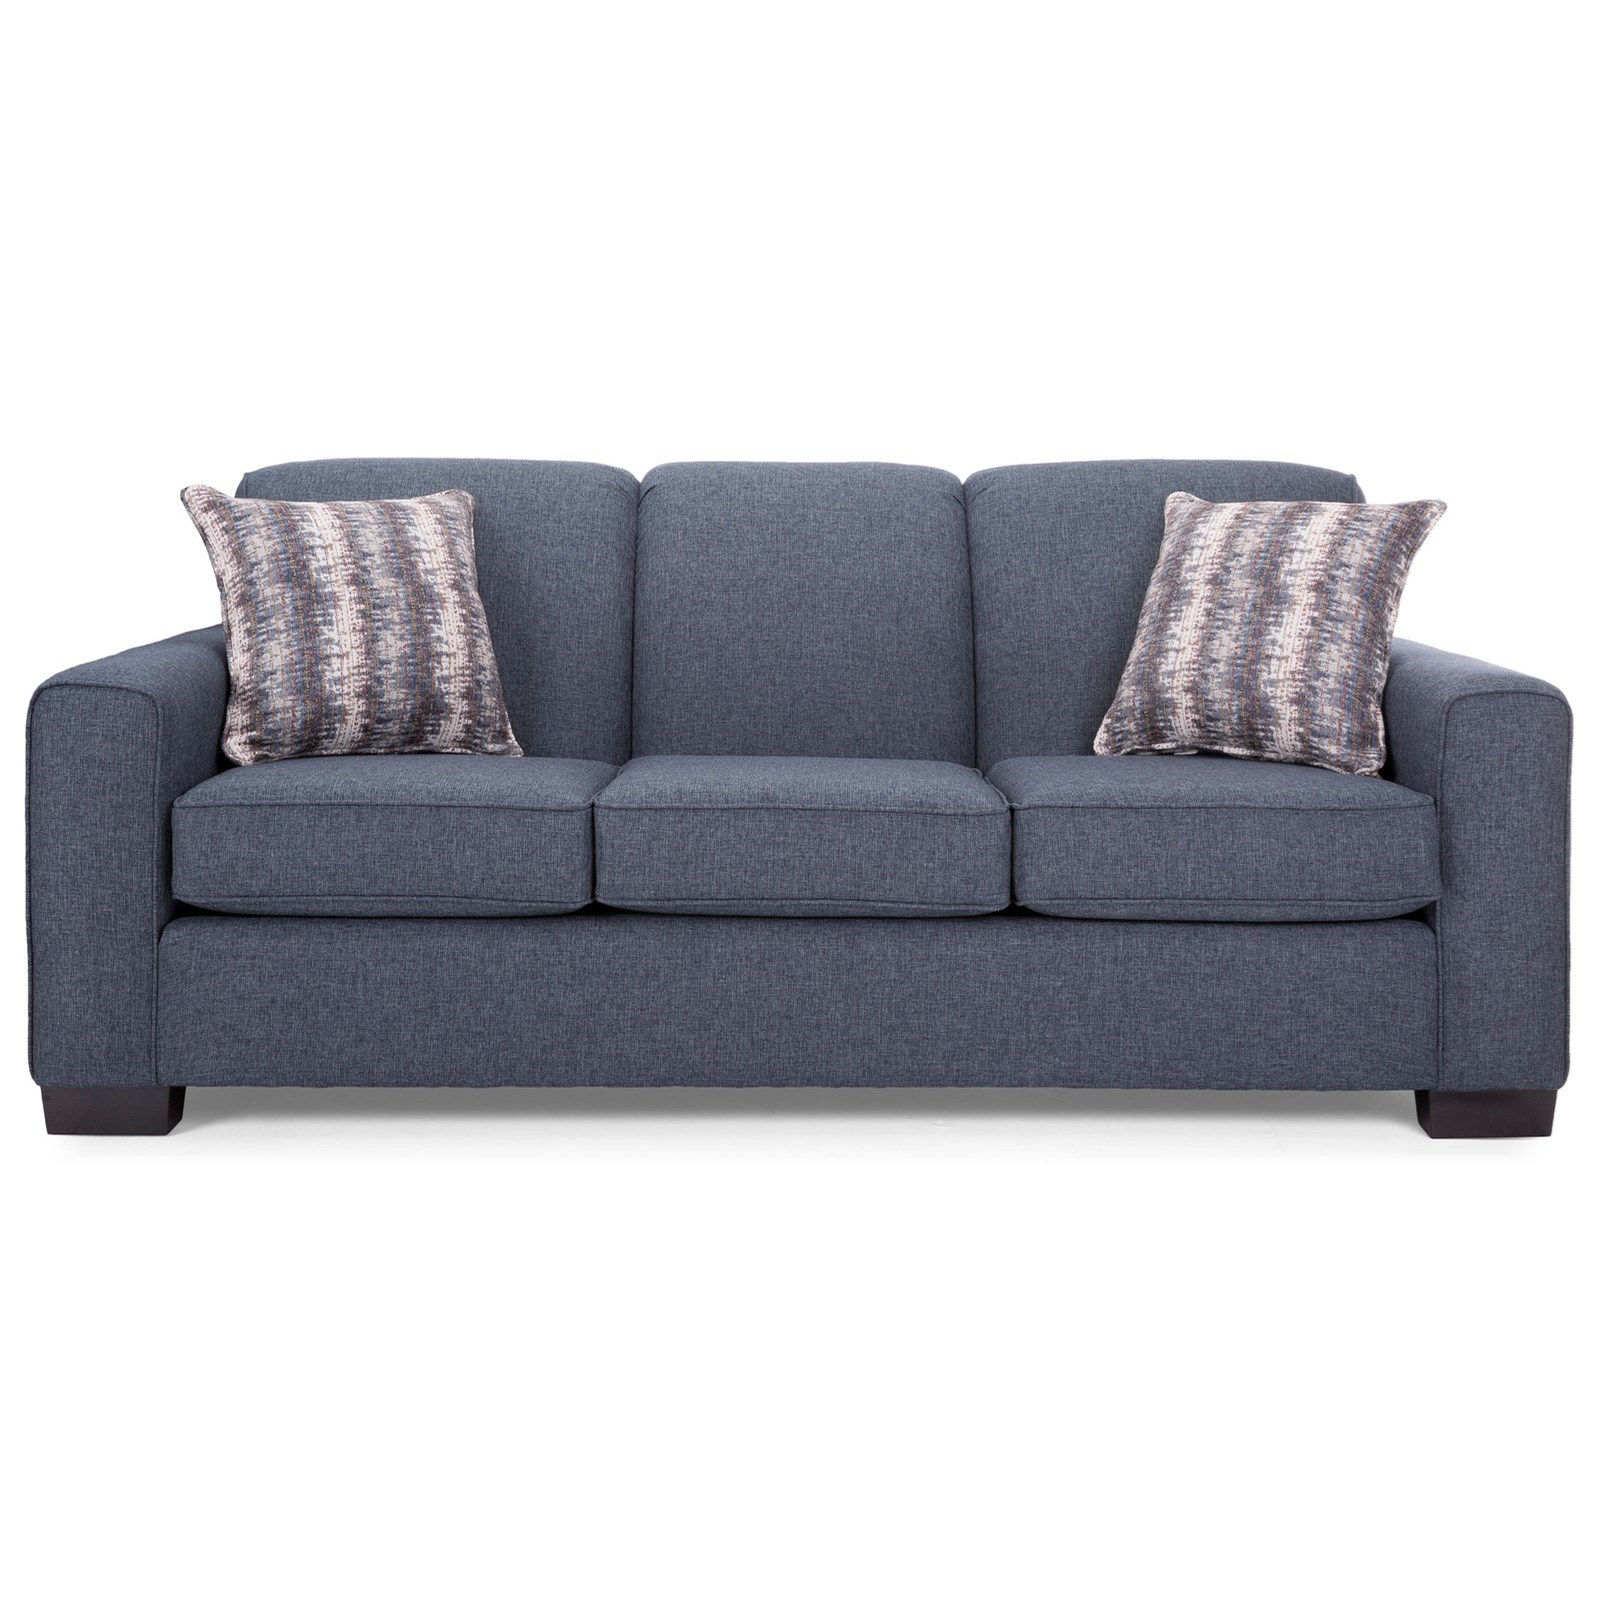 2805 Sofa by Decor-Rest at Stoney Creek Furniture